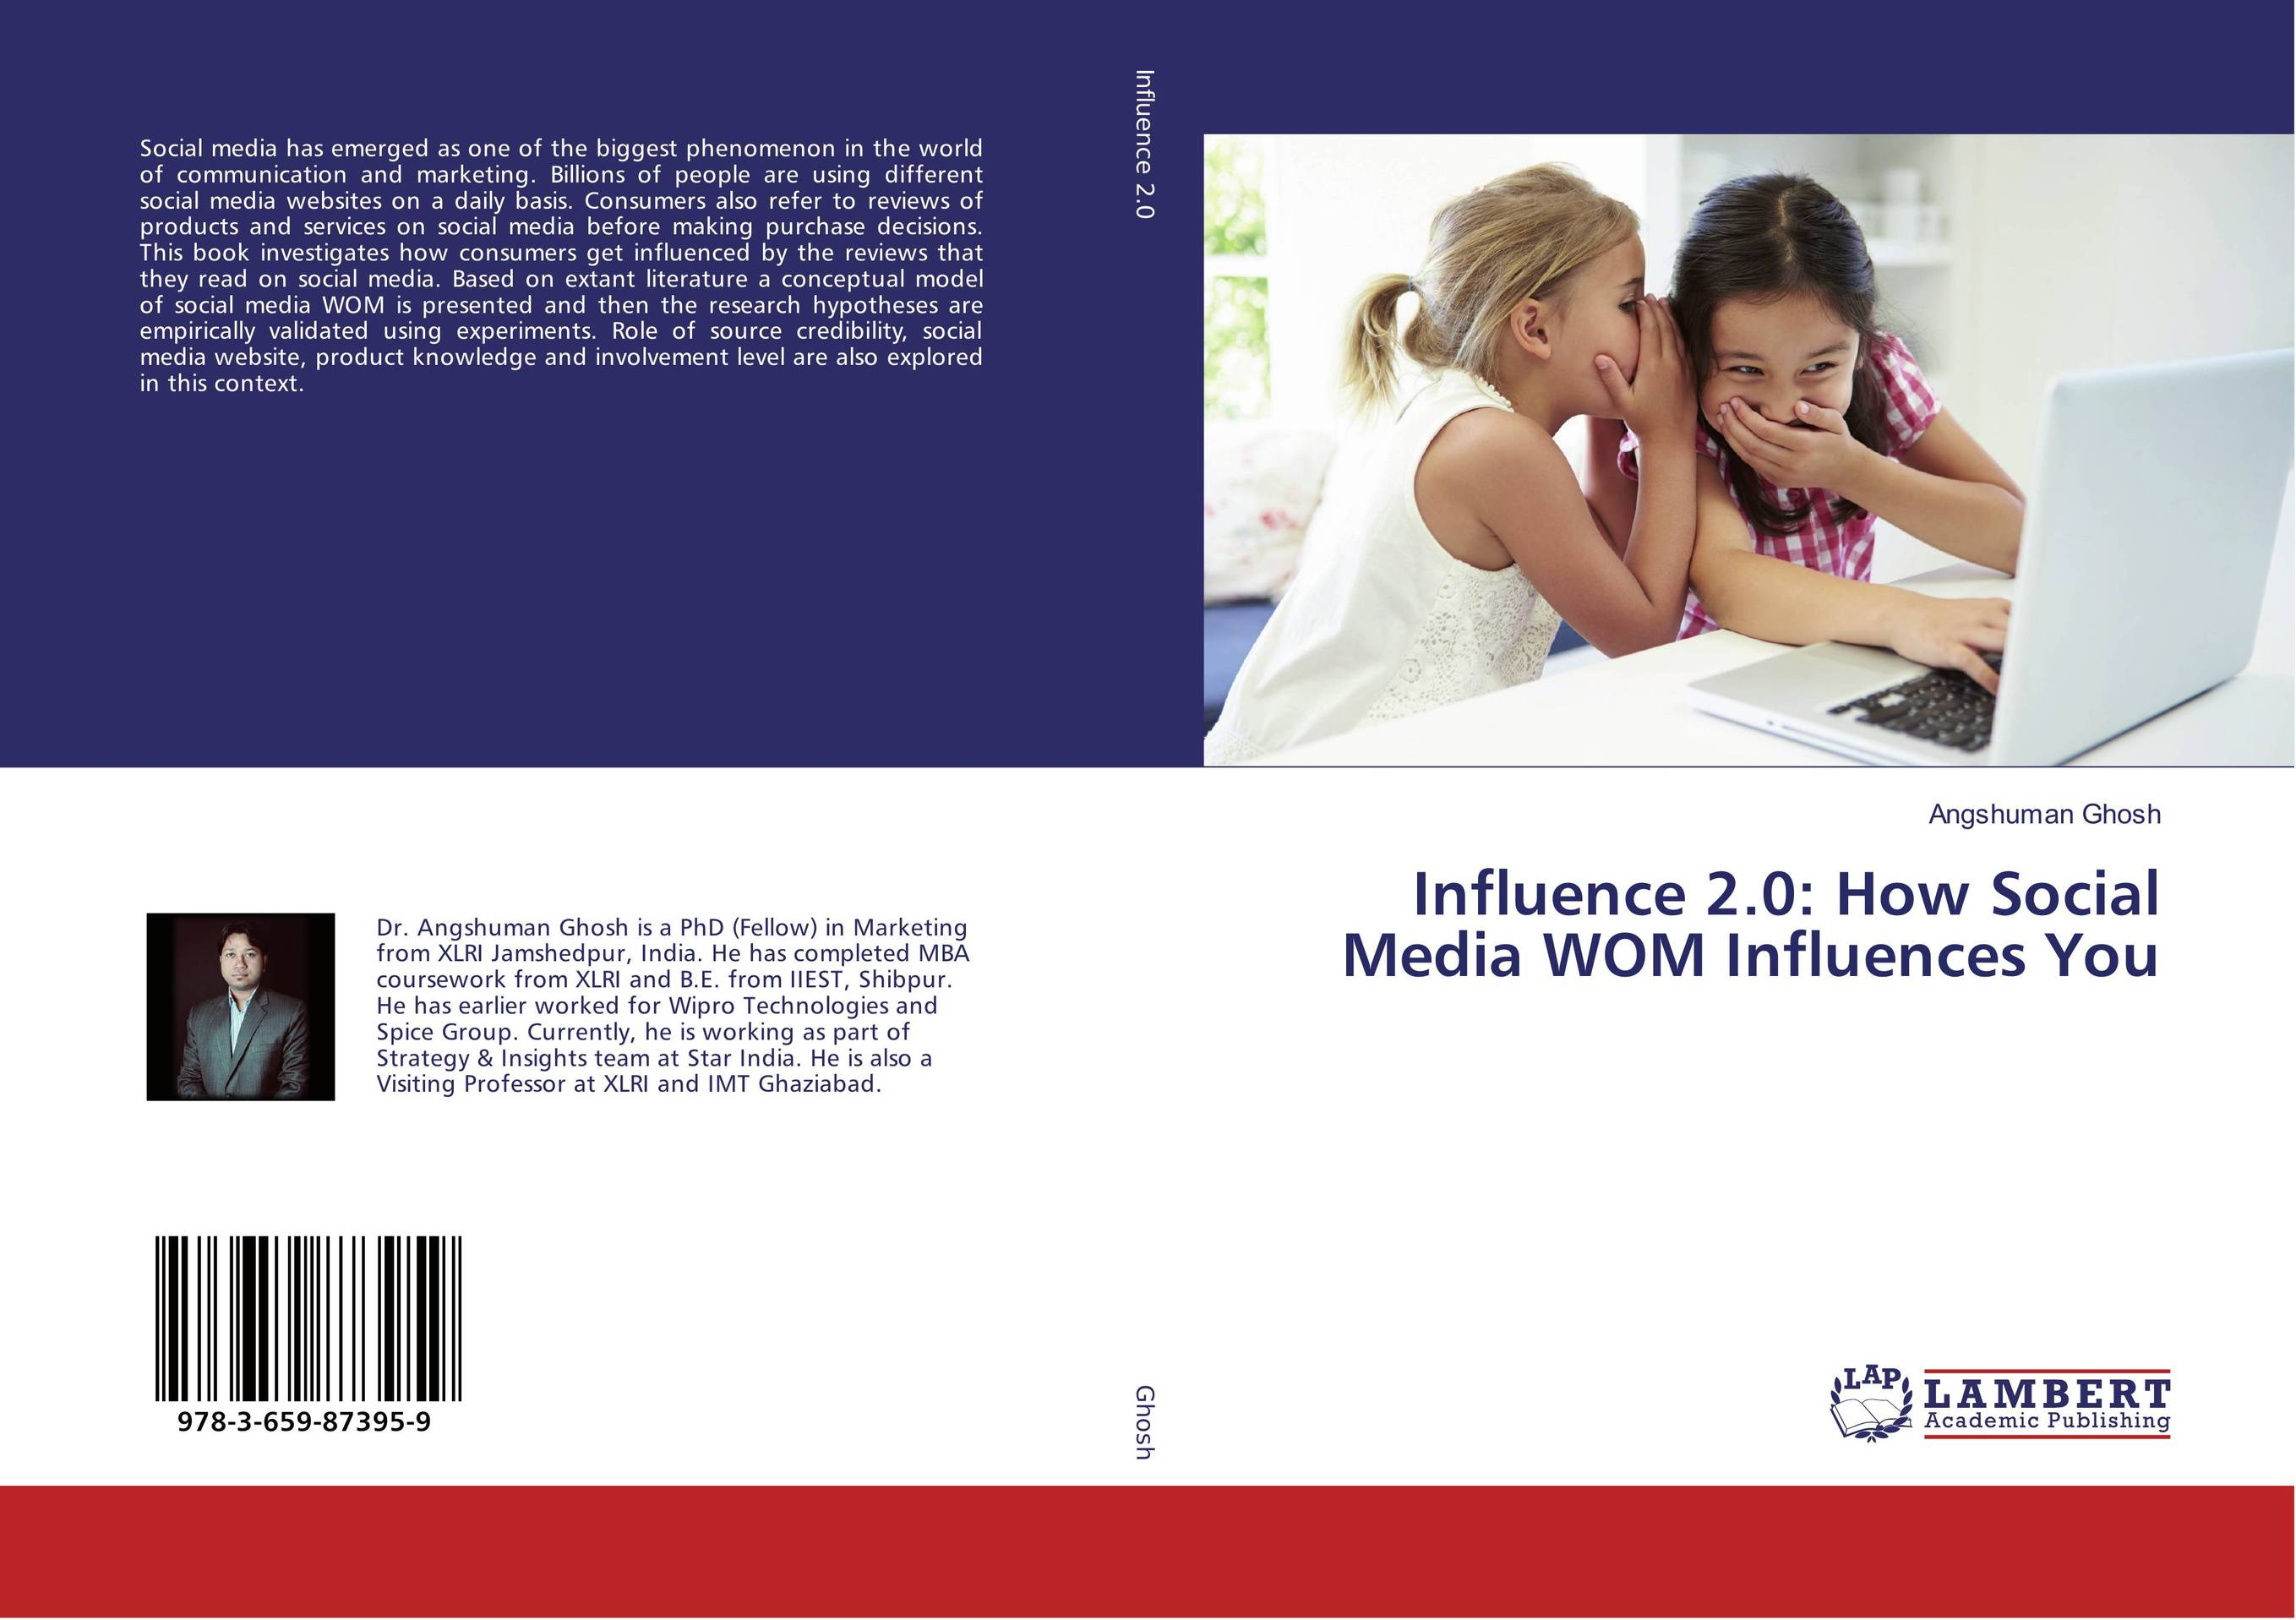 Influence 2.0: How Social Media WOM Influences You